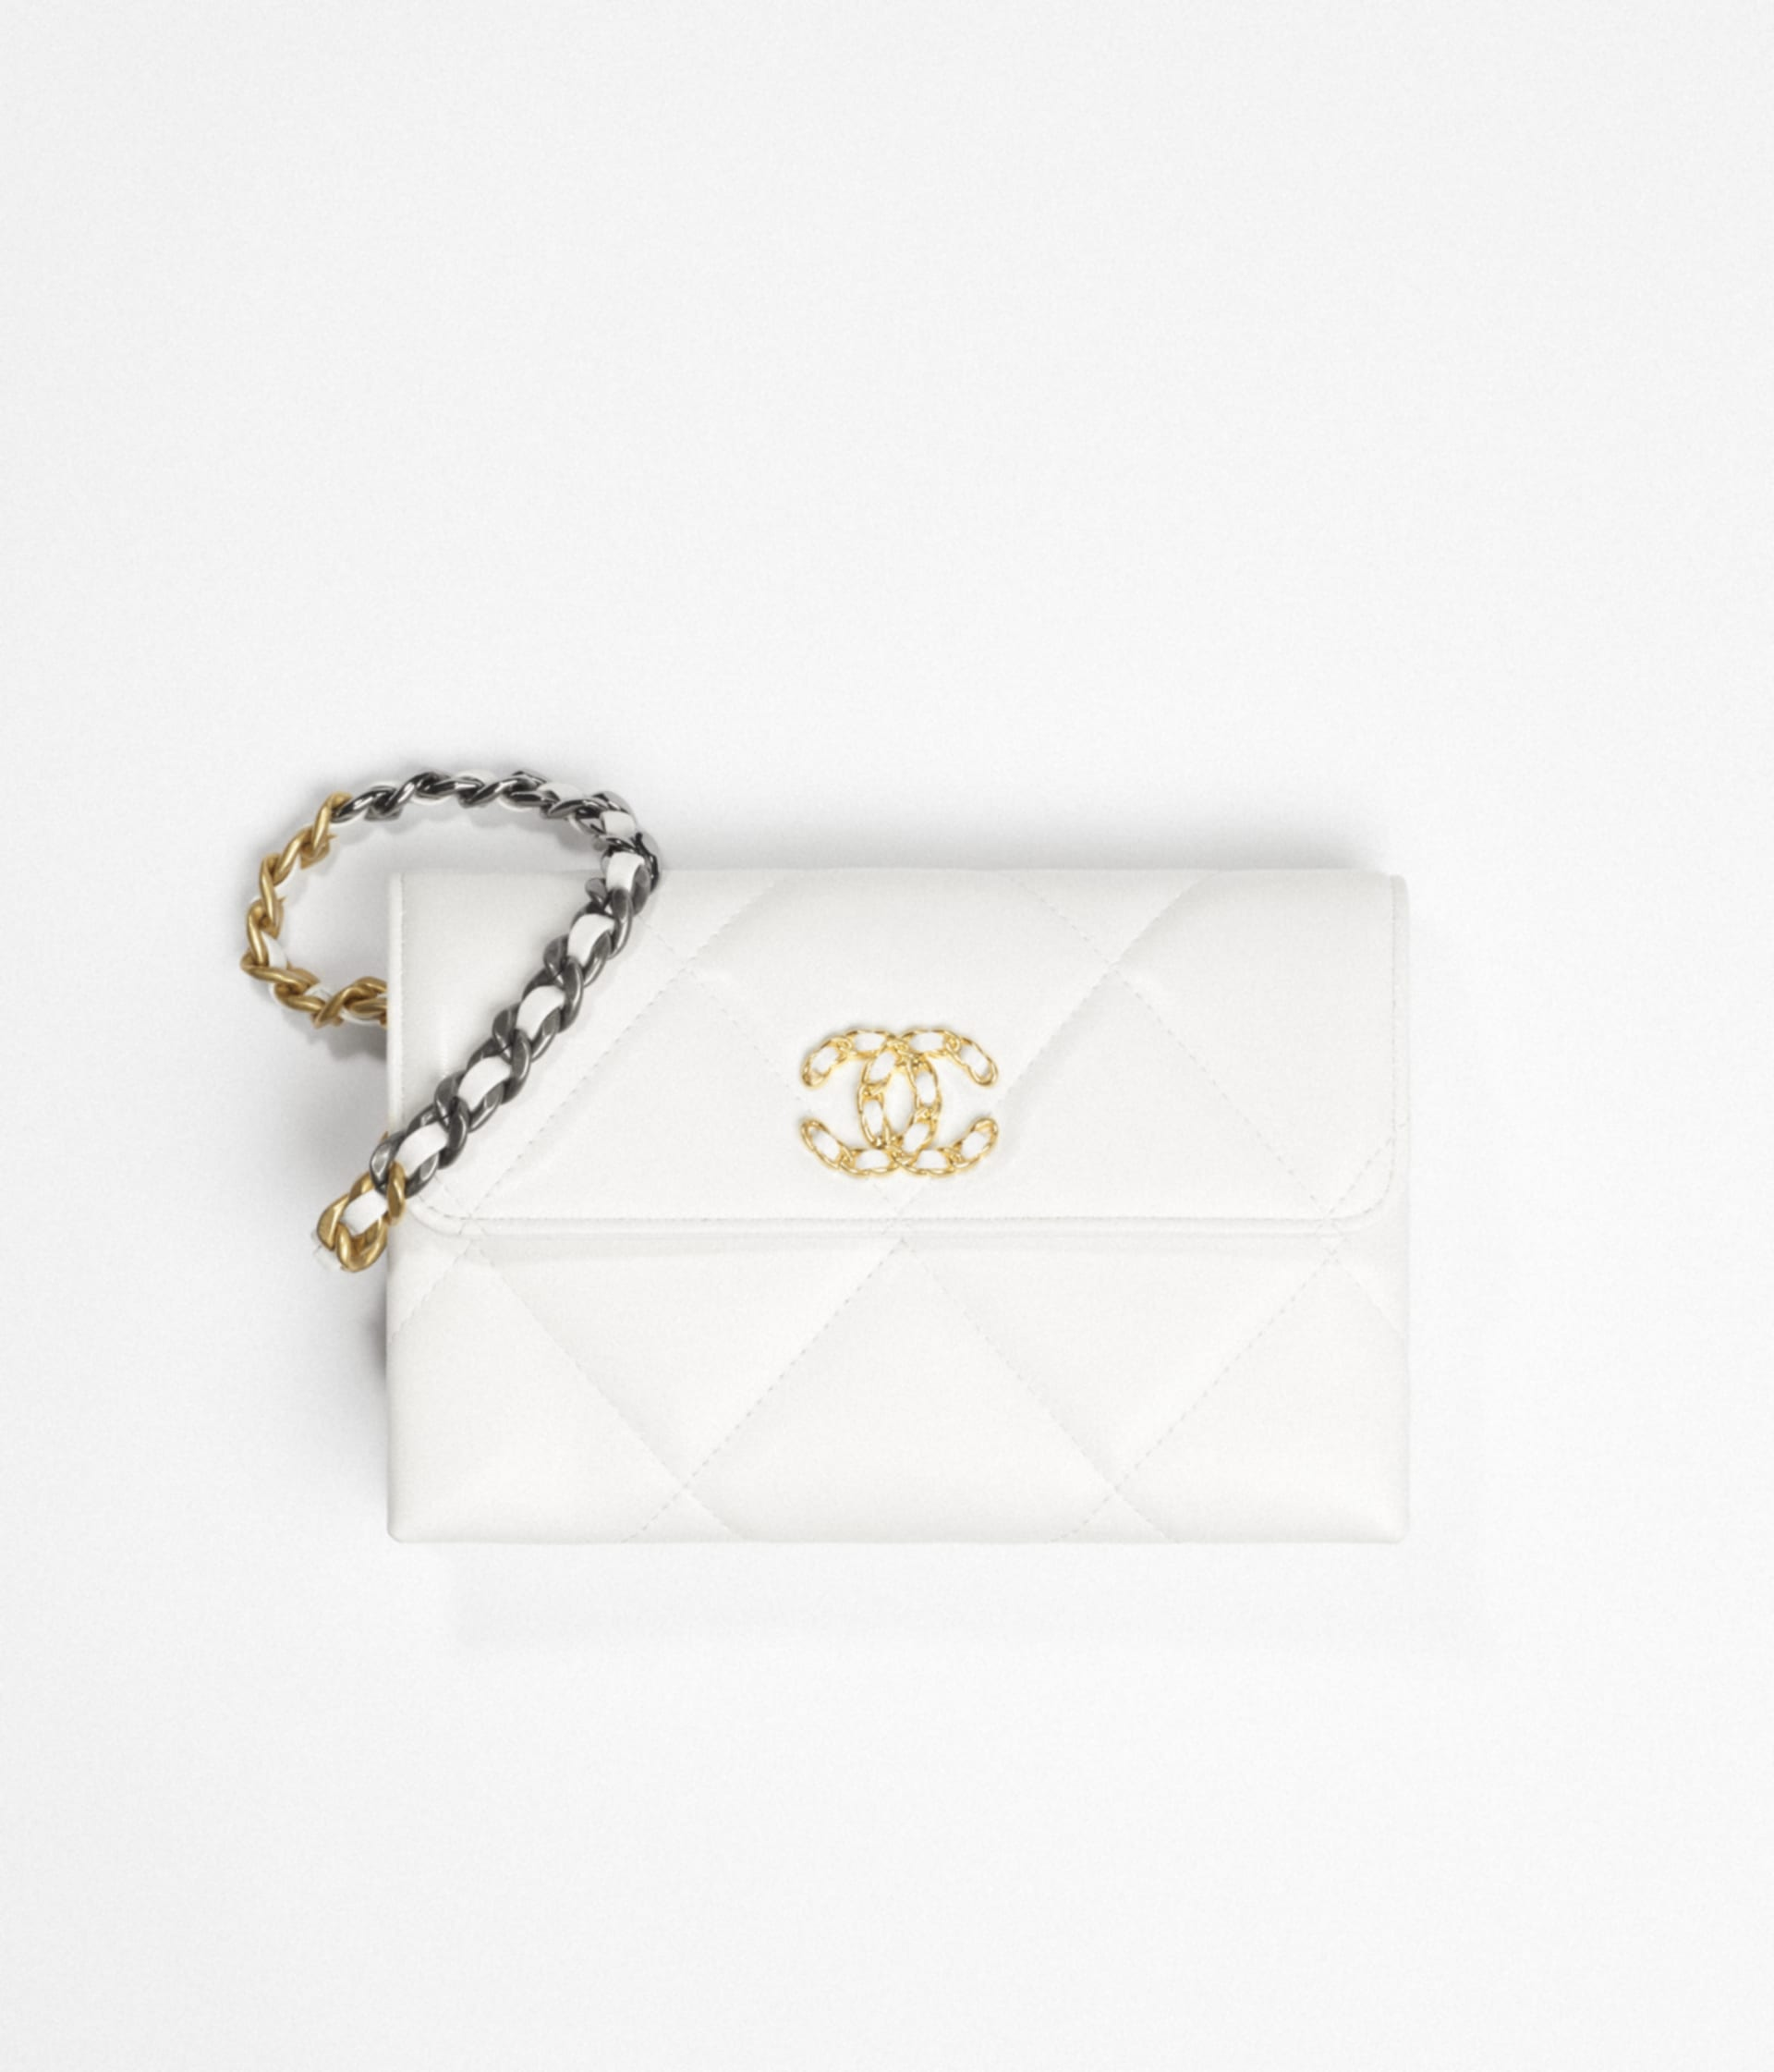 image 1 - CHANEL 19 Pouch with Handle - Lambskin, Gold-Tone, Silver-Tone & Ruthenium-Finish Metal - White